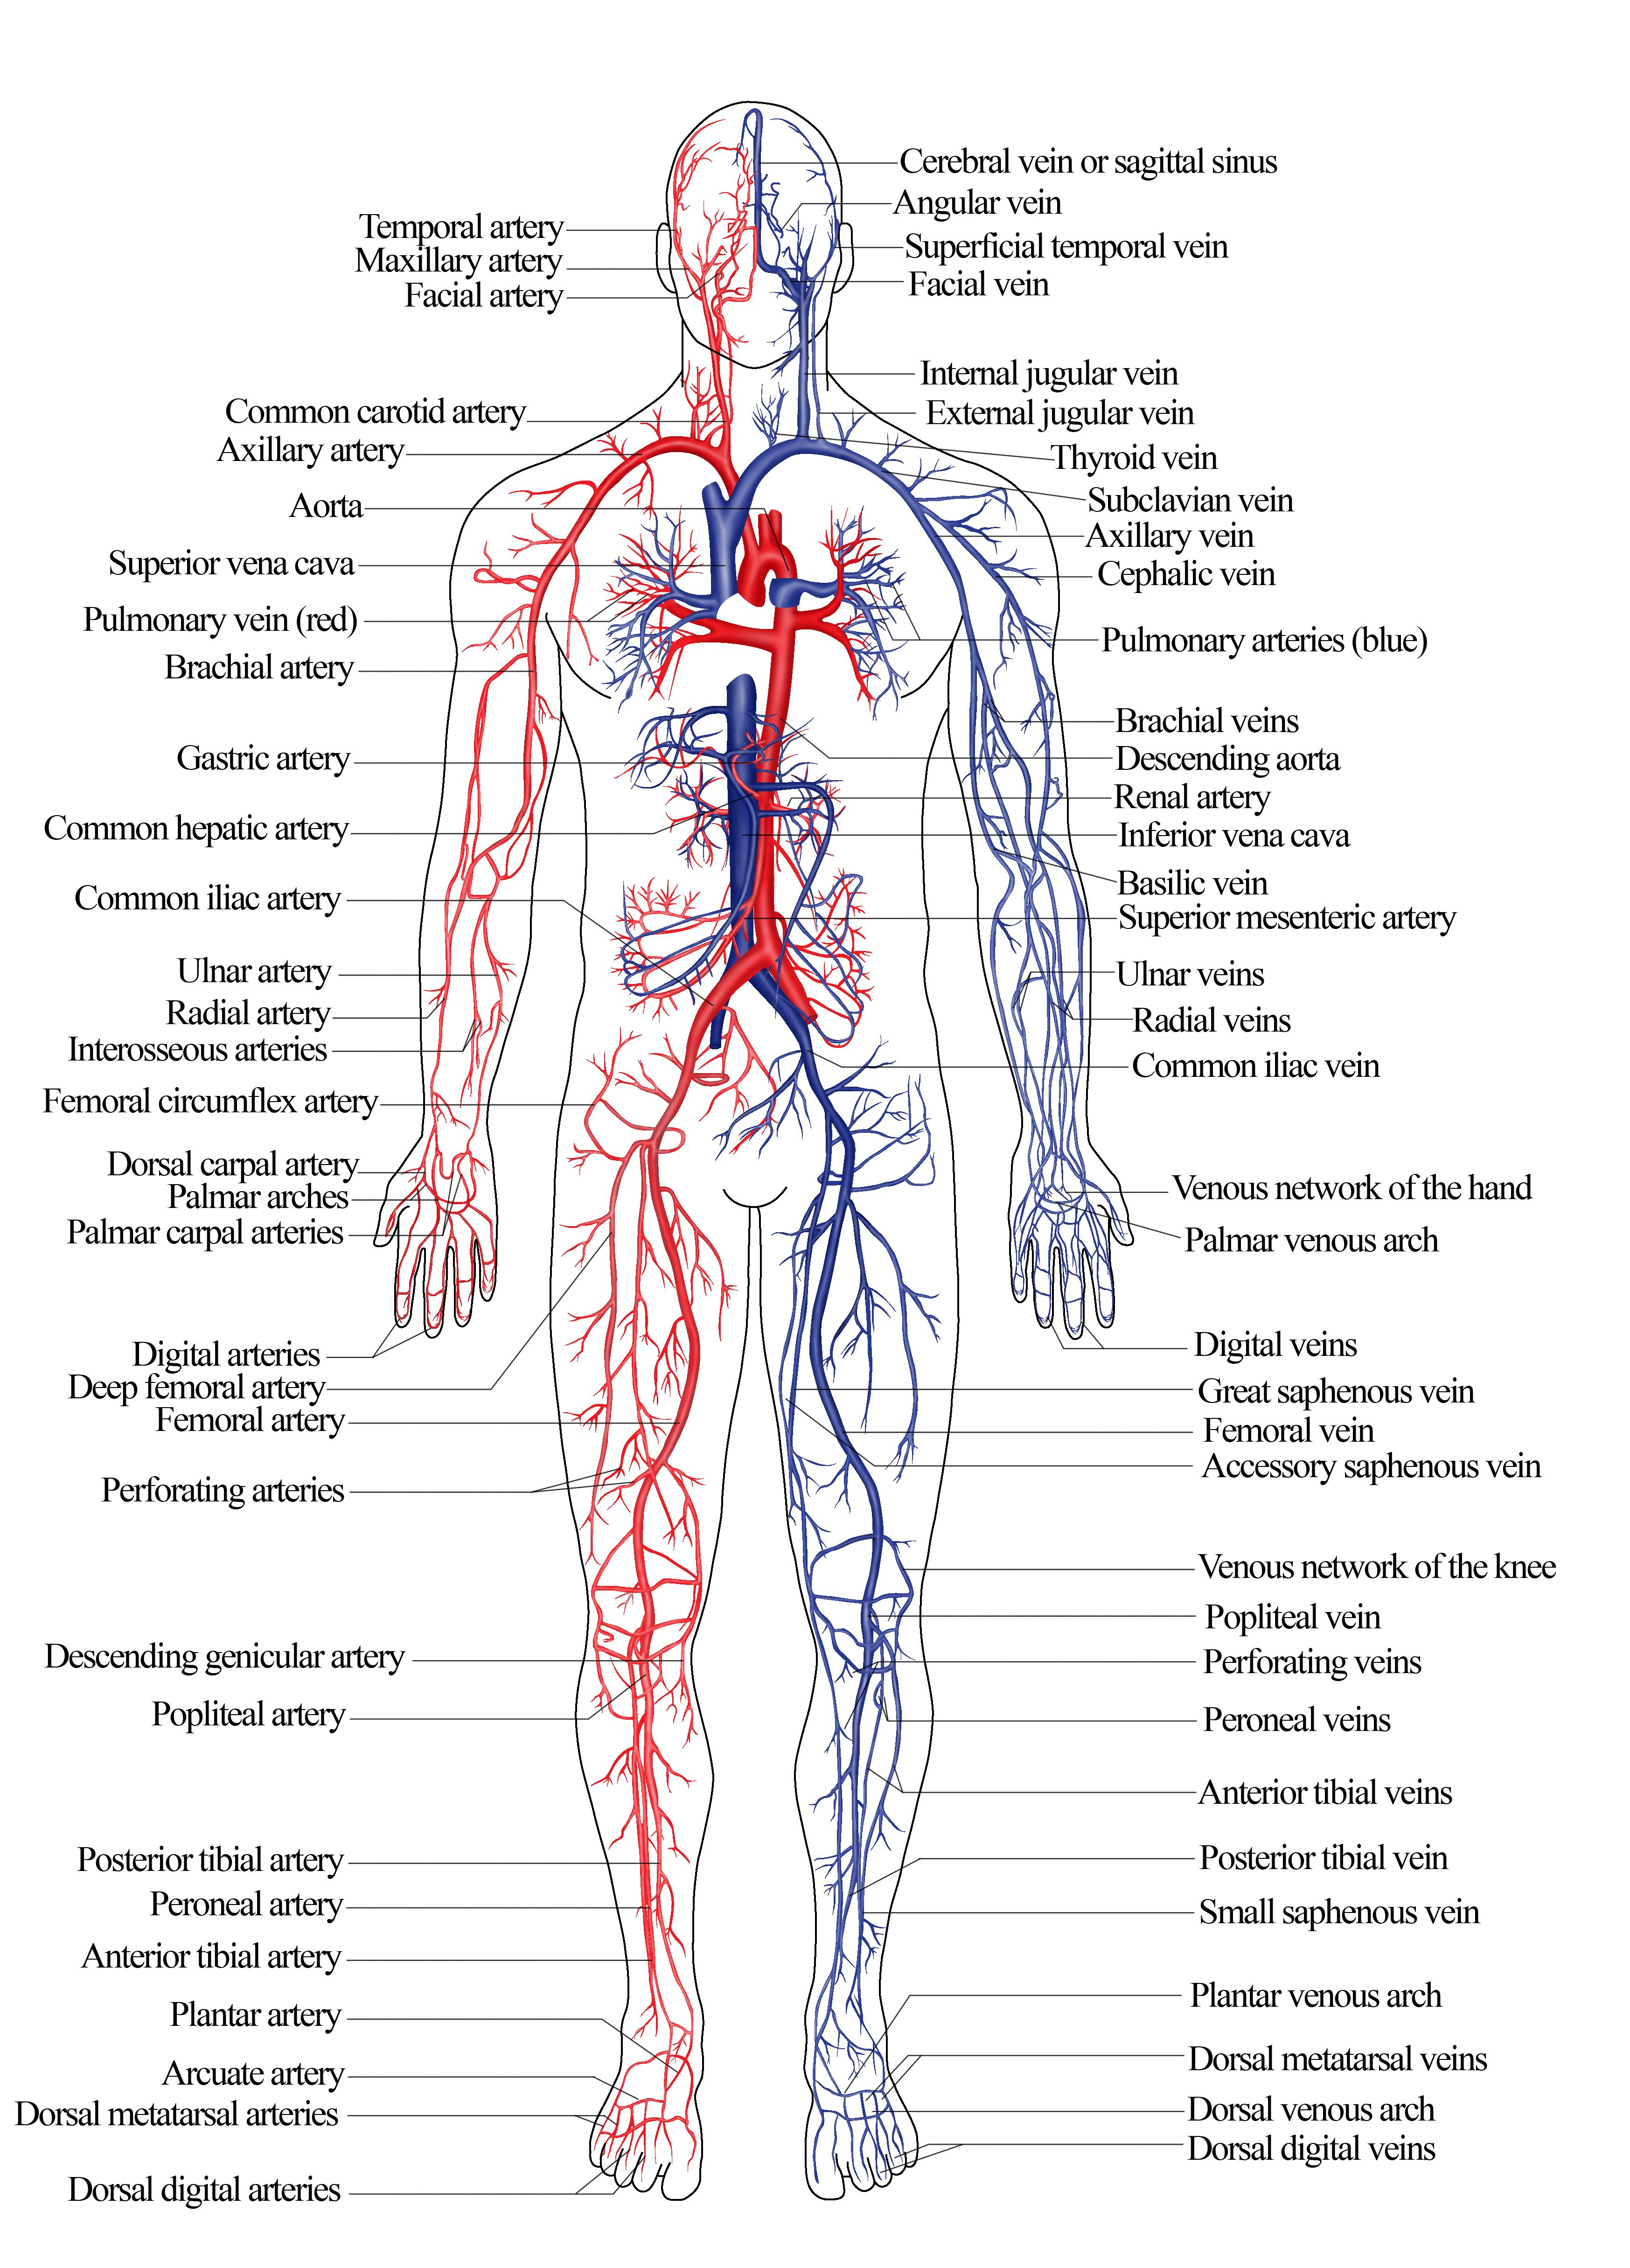 diagram of venous system of human body nroer file image arterial and venous system of humans [ 3494 x 4861 Pixel ]